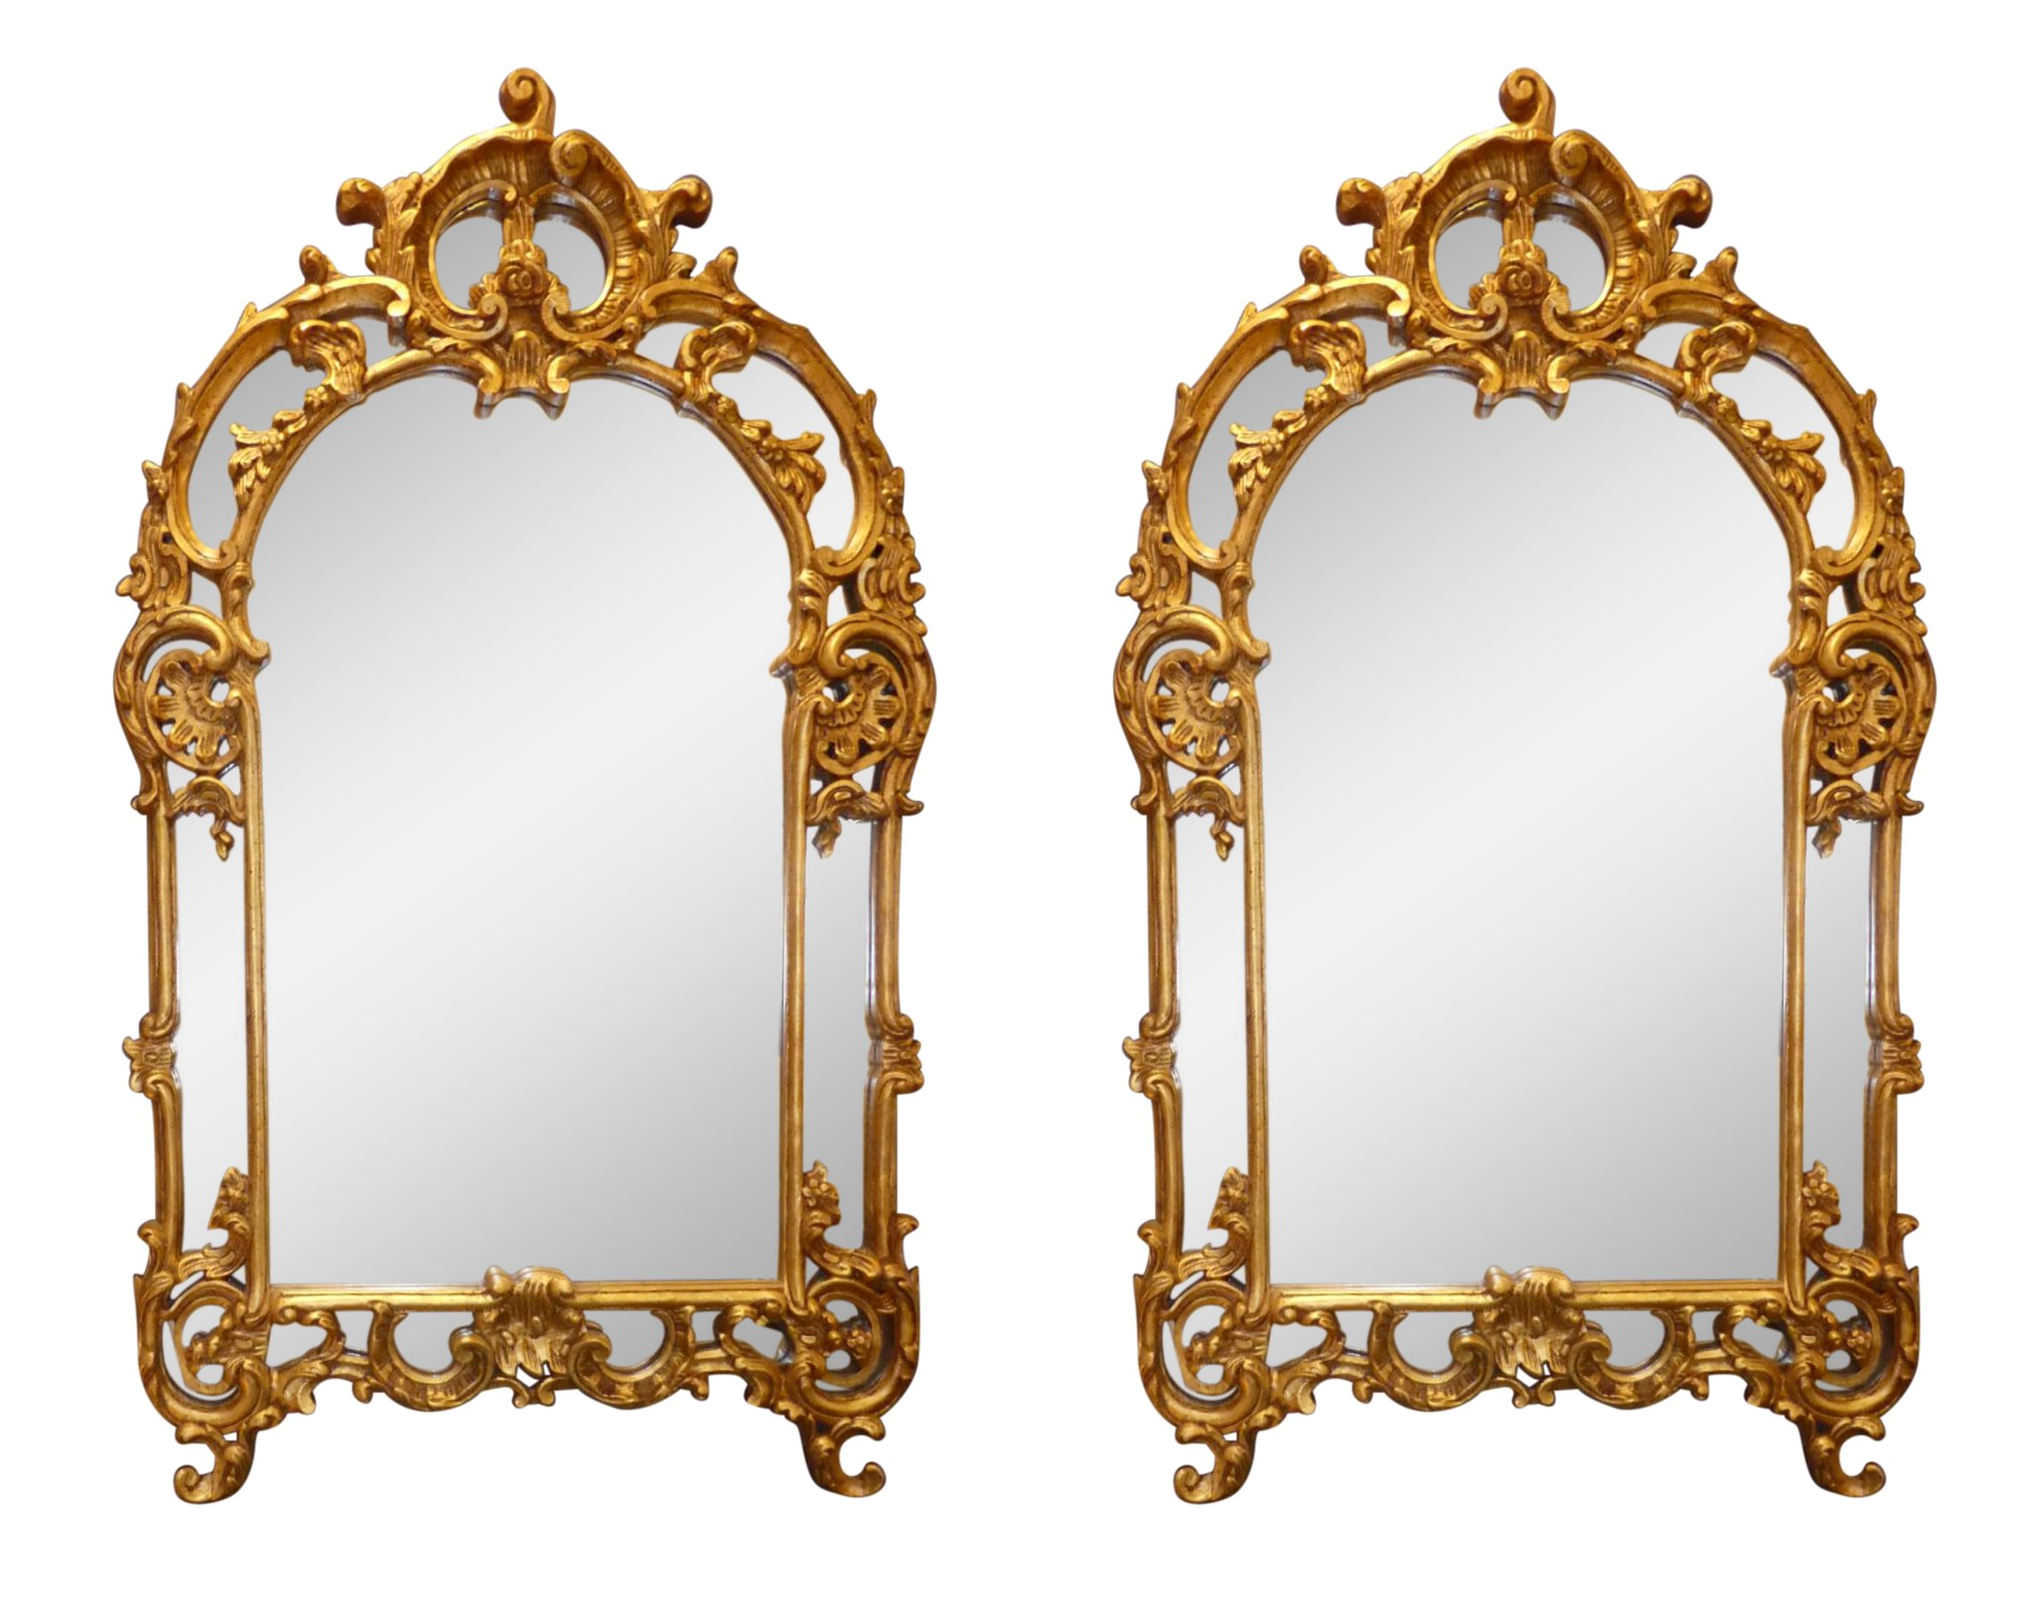 SOLD Pair of LaBarge Giltwood Mirrors 34x59